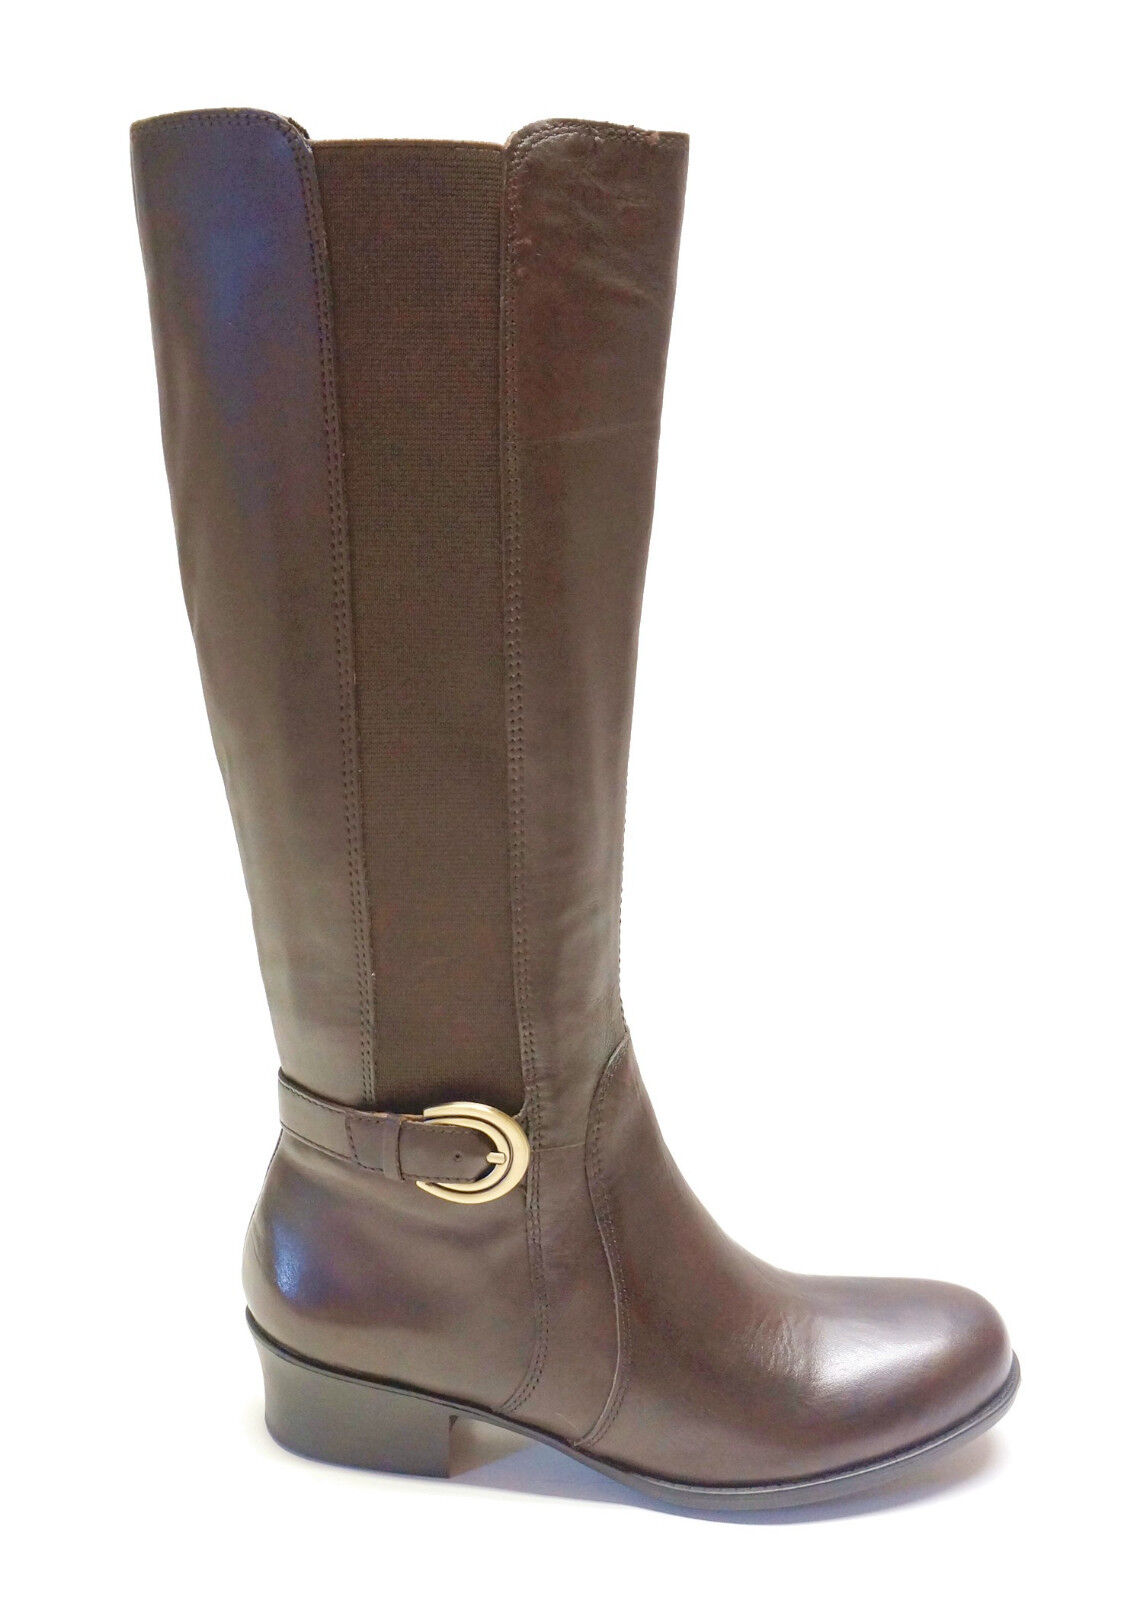 Naturalizer  Brown Leather N5 Comfort Tall Boots ARNESS Women's 7M